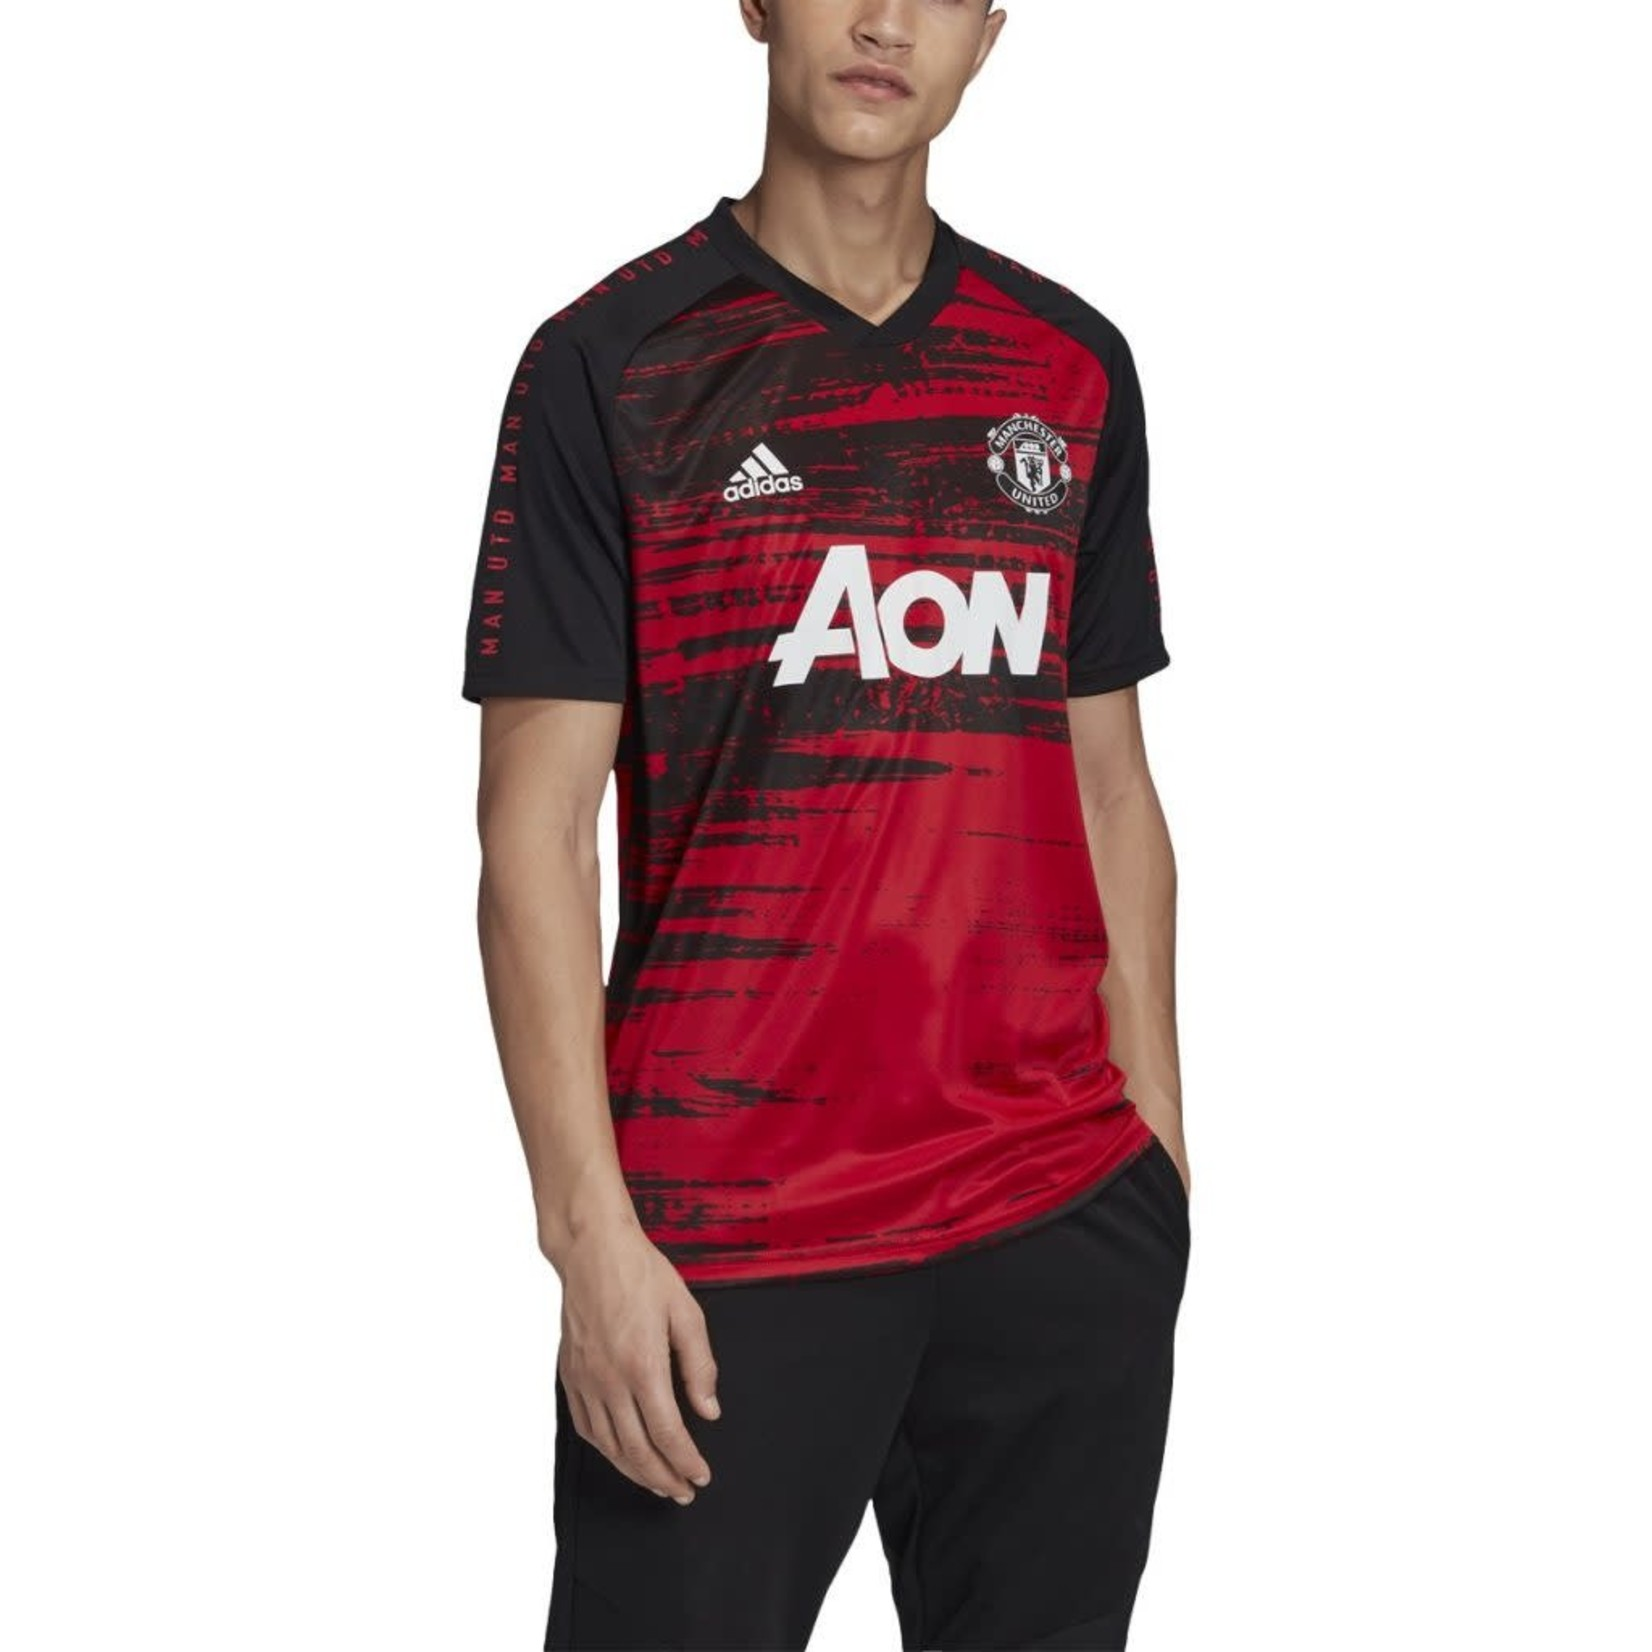 ADIDAS MANCHESTER UNITED 20/21 PREMATCH JERSEY